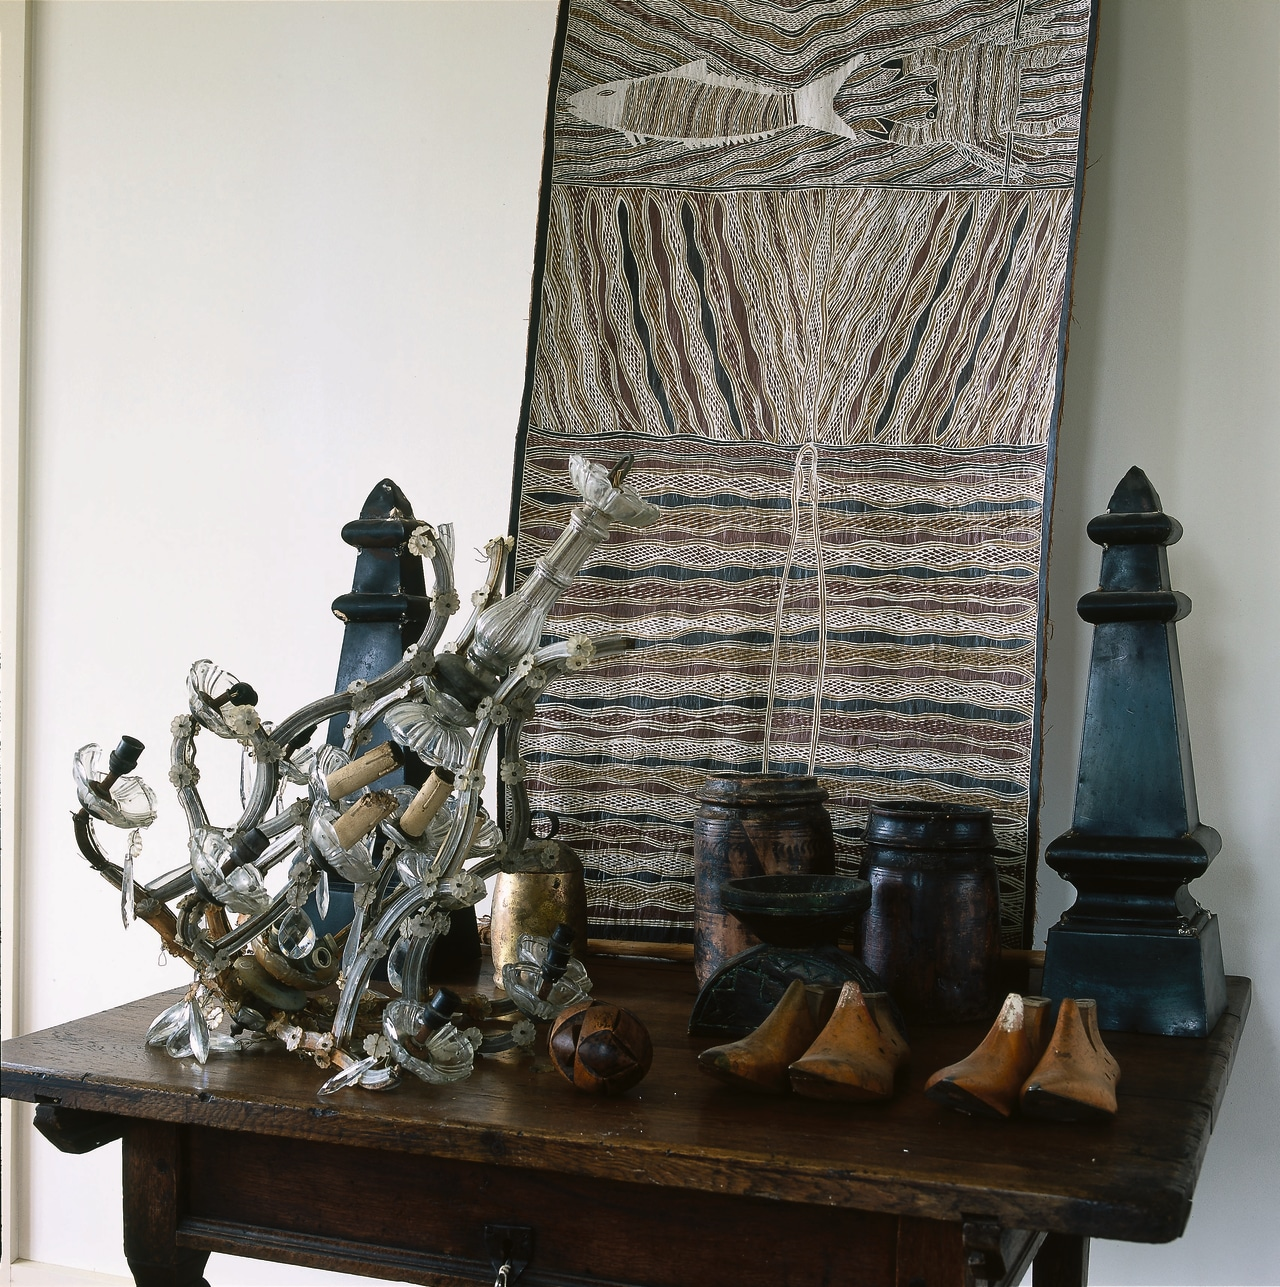 The detail of ornaments on a side table sculpture, white, black